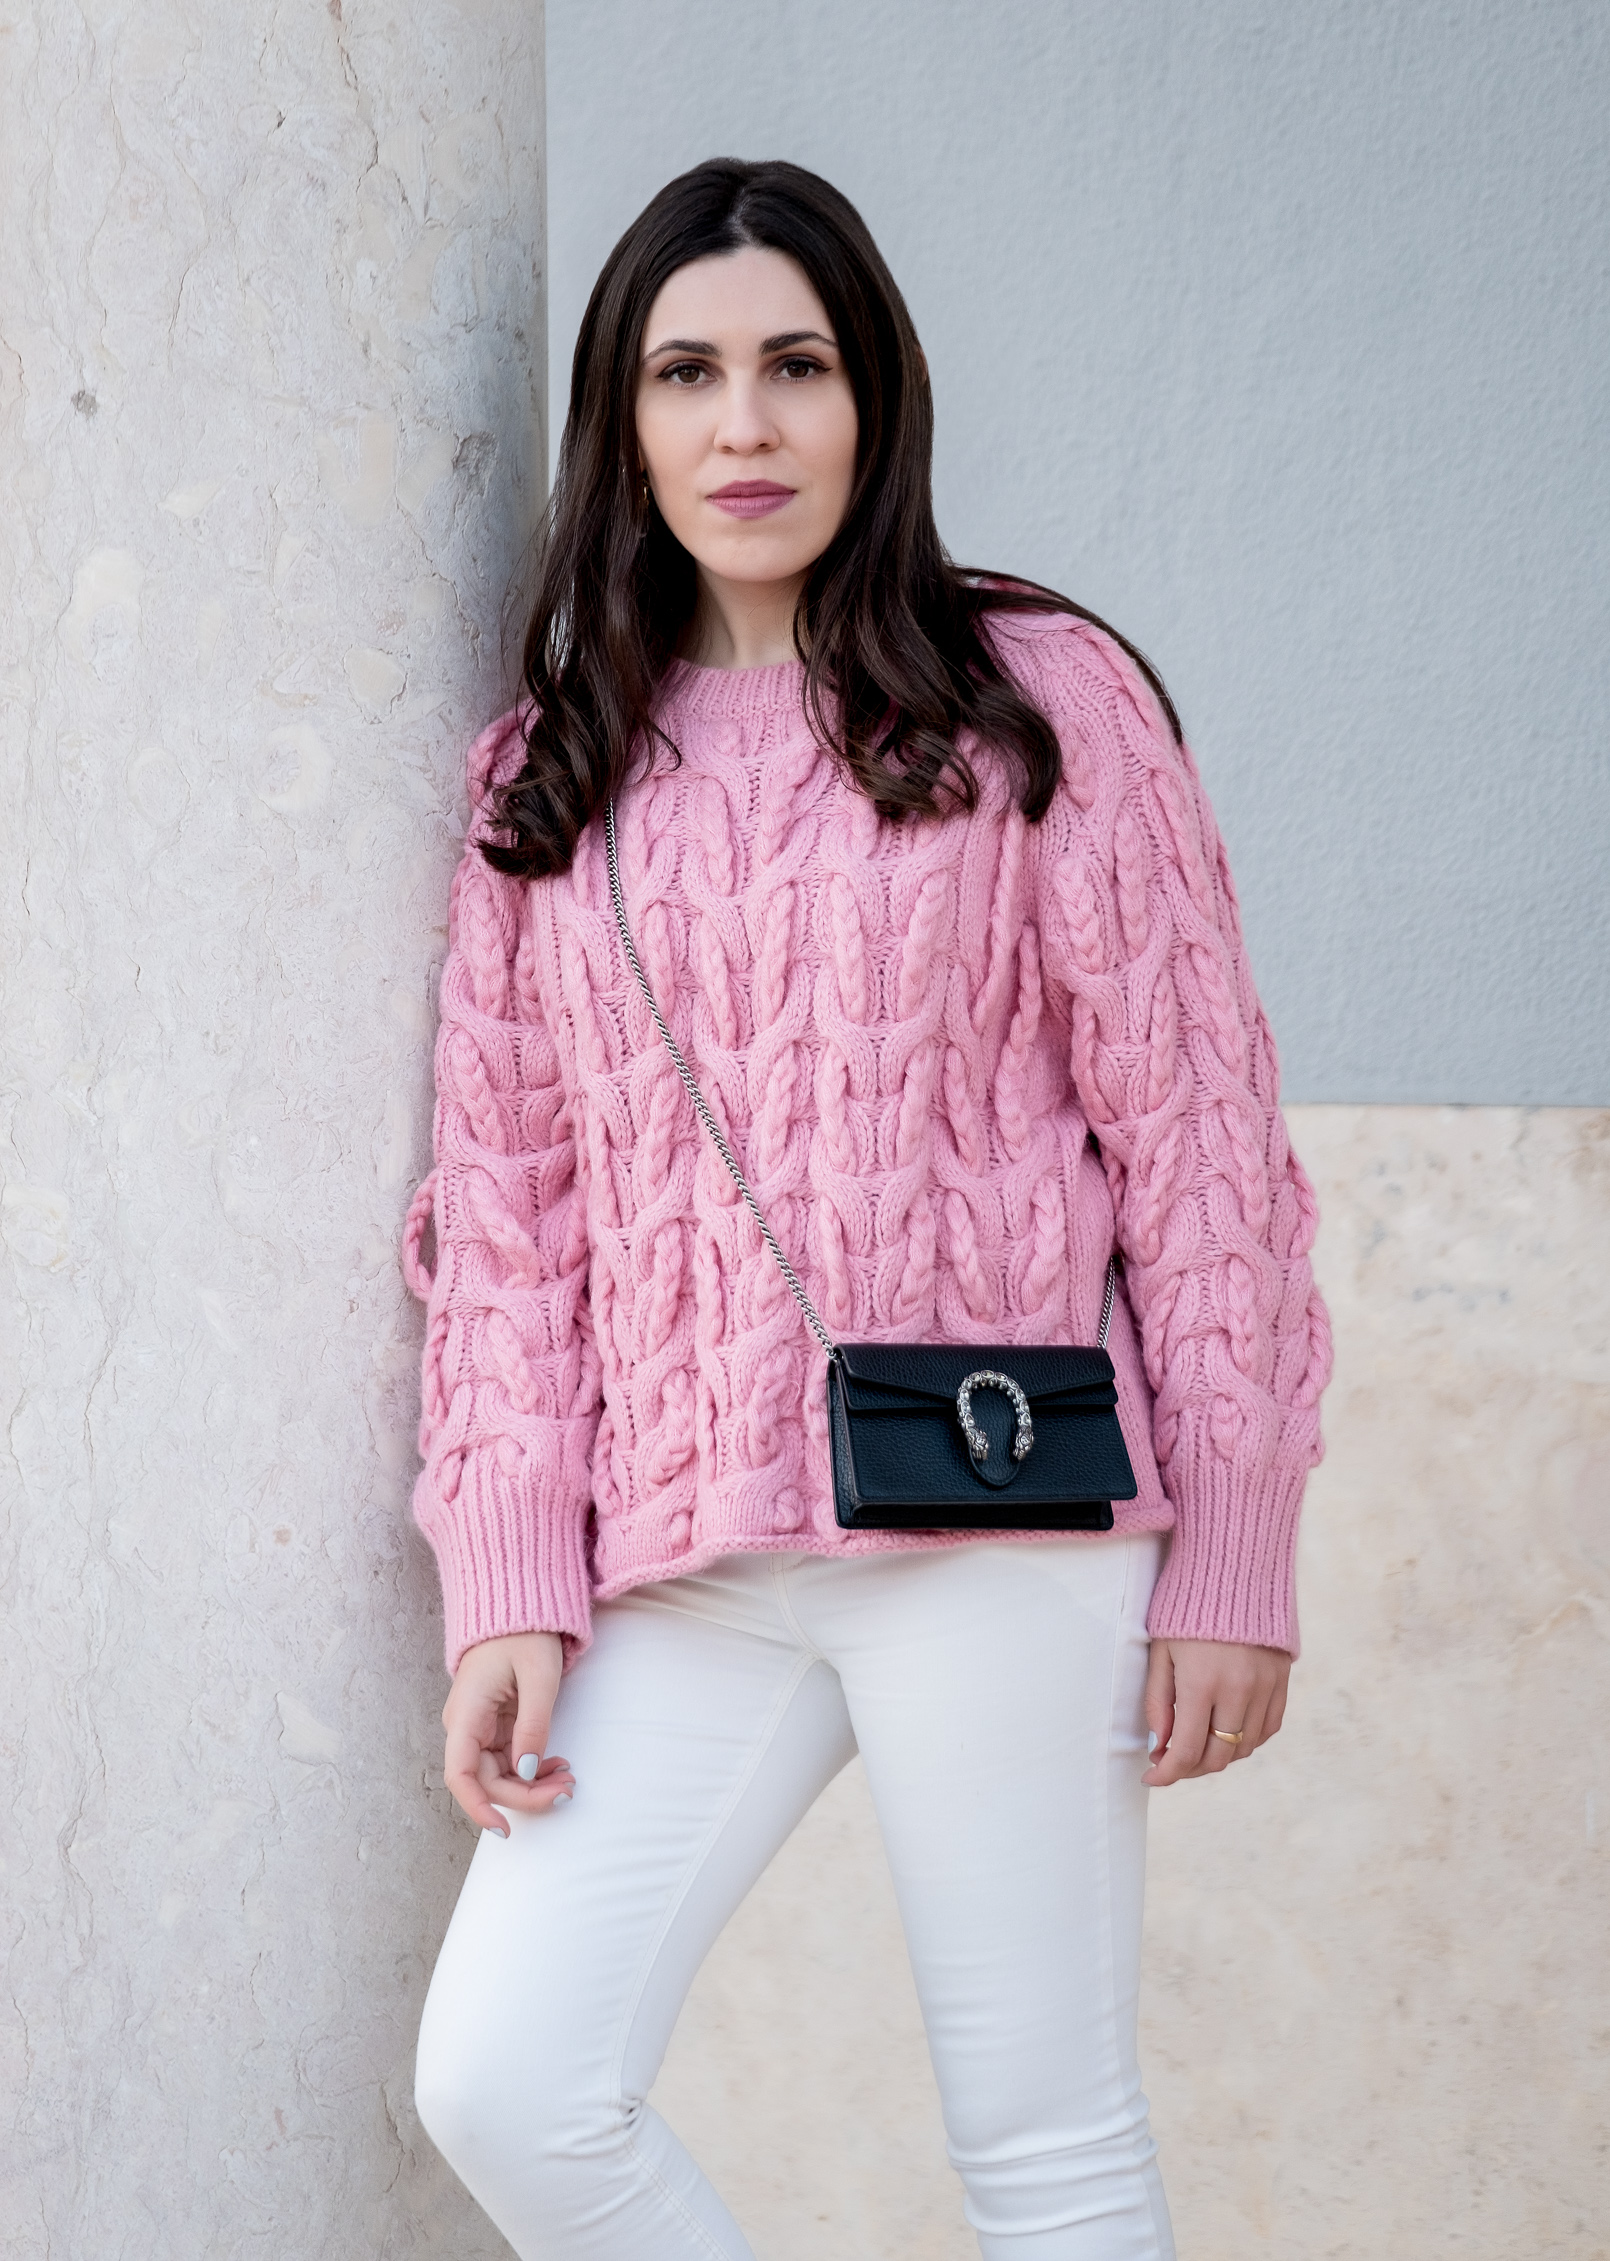 Le Fashionaire pink zara cable knit sweater white mango trousers gucci mini dionysus leather bag 9710 EN pink zara cable knit sweater white mango trousers gucci mini dionysus leather bag 9710 EN